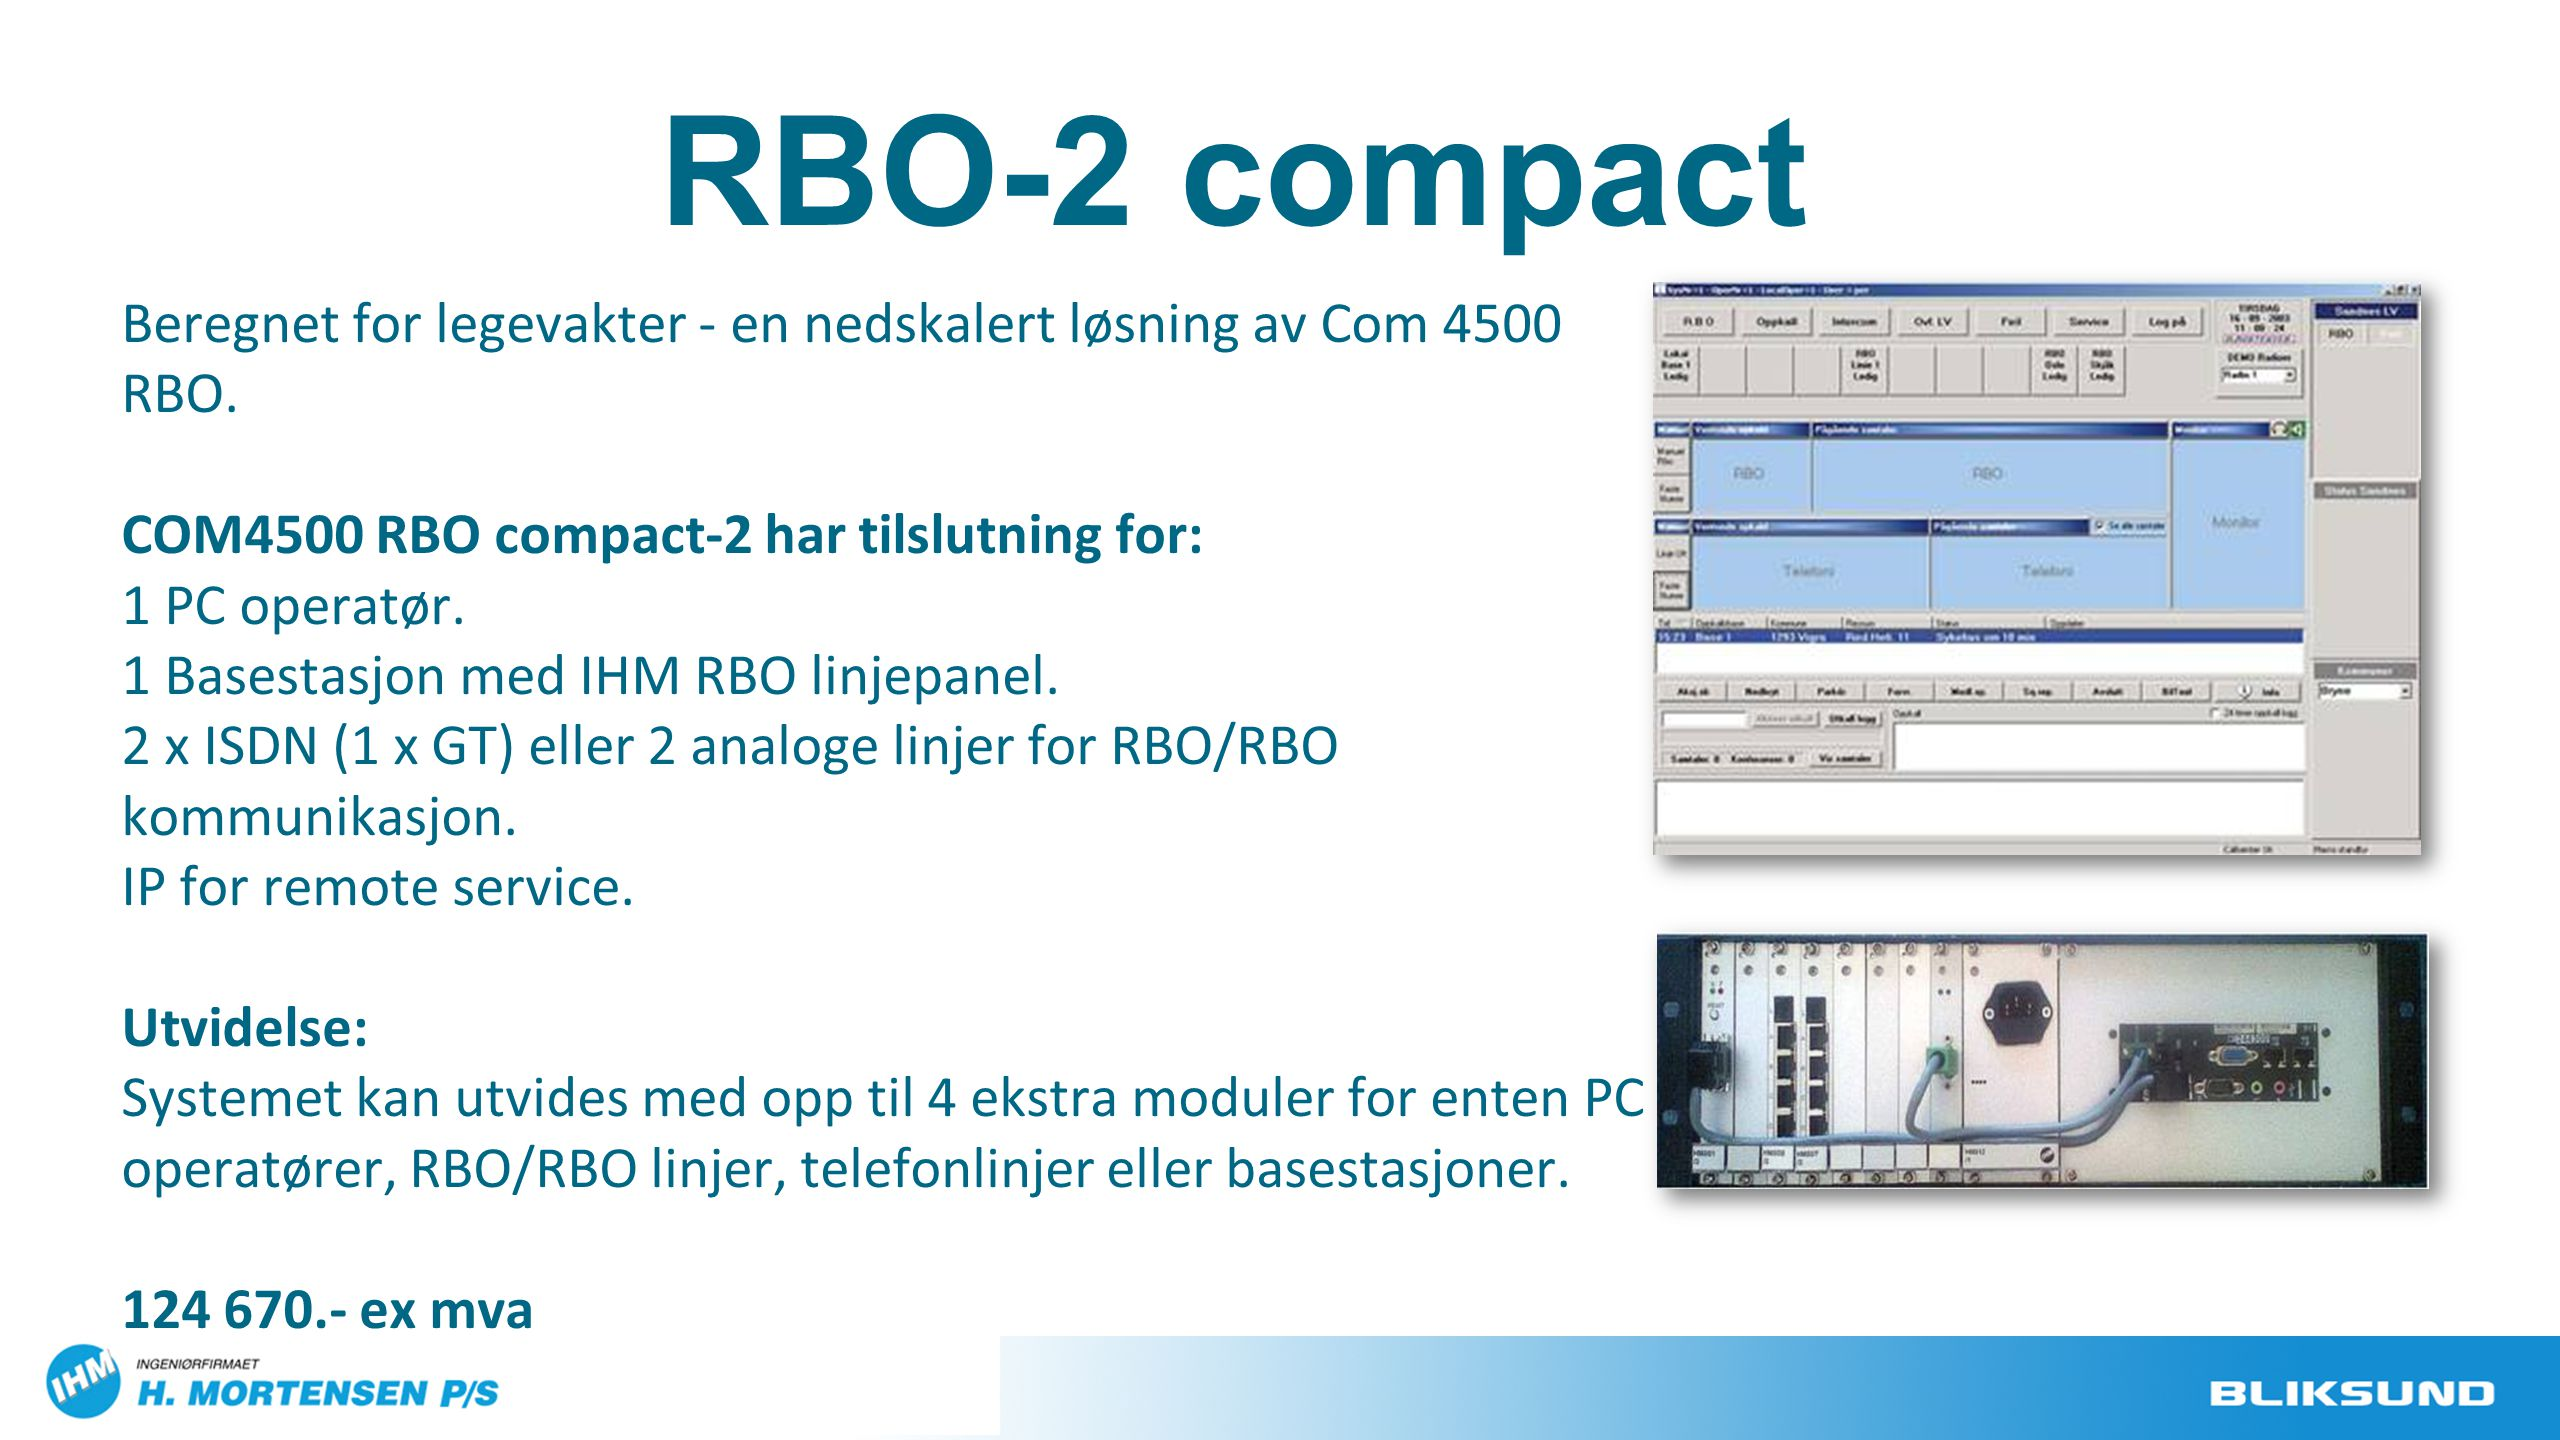 RBO-2 compact